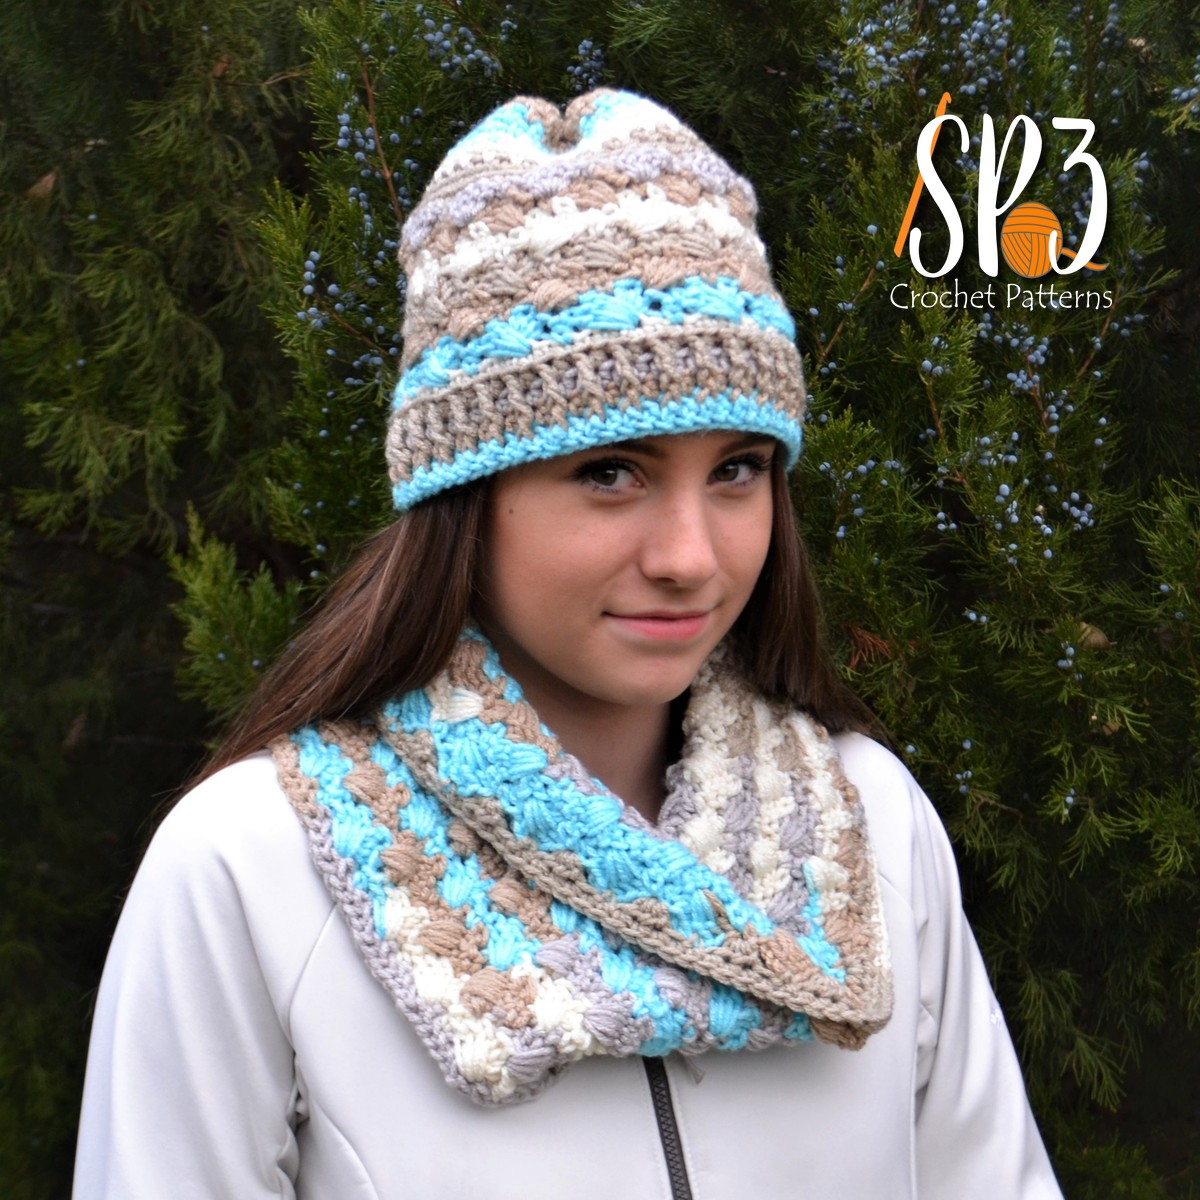 Woven Shells Hat & Cowl Crochet Pattern